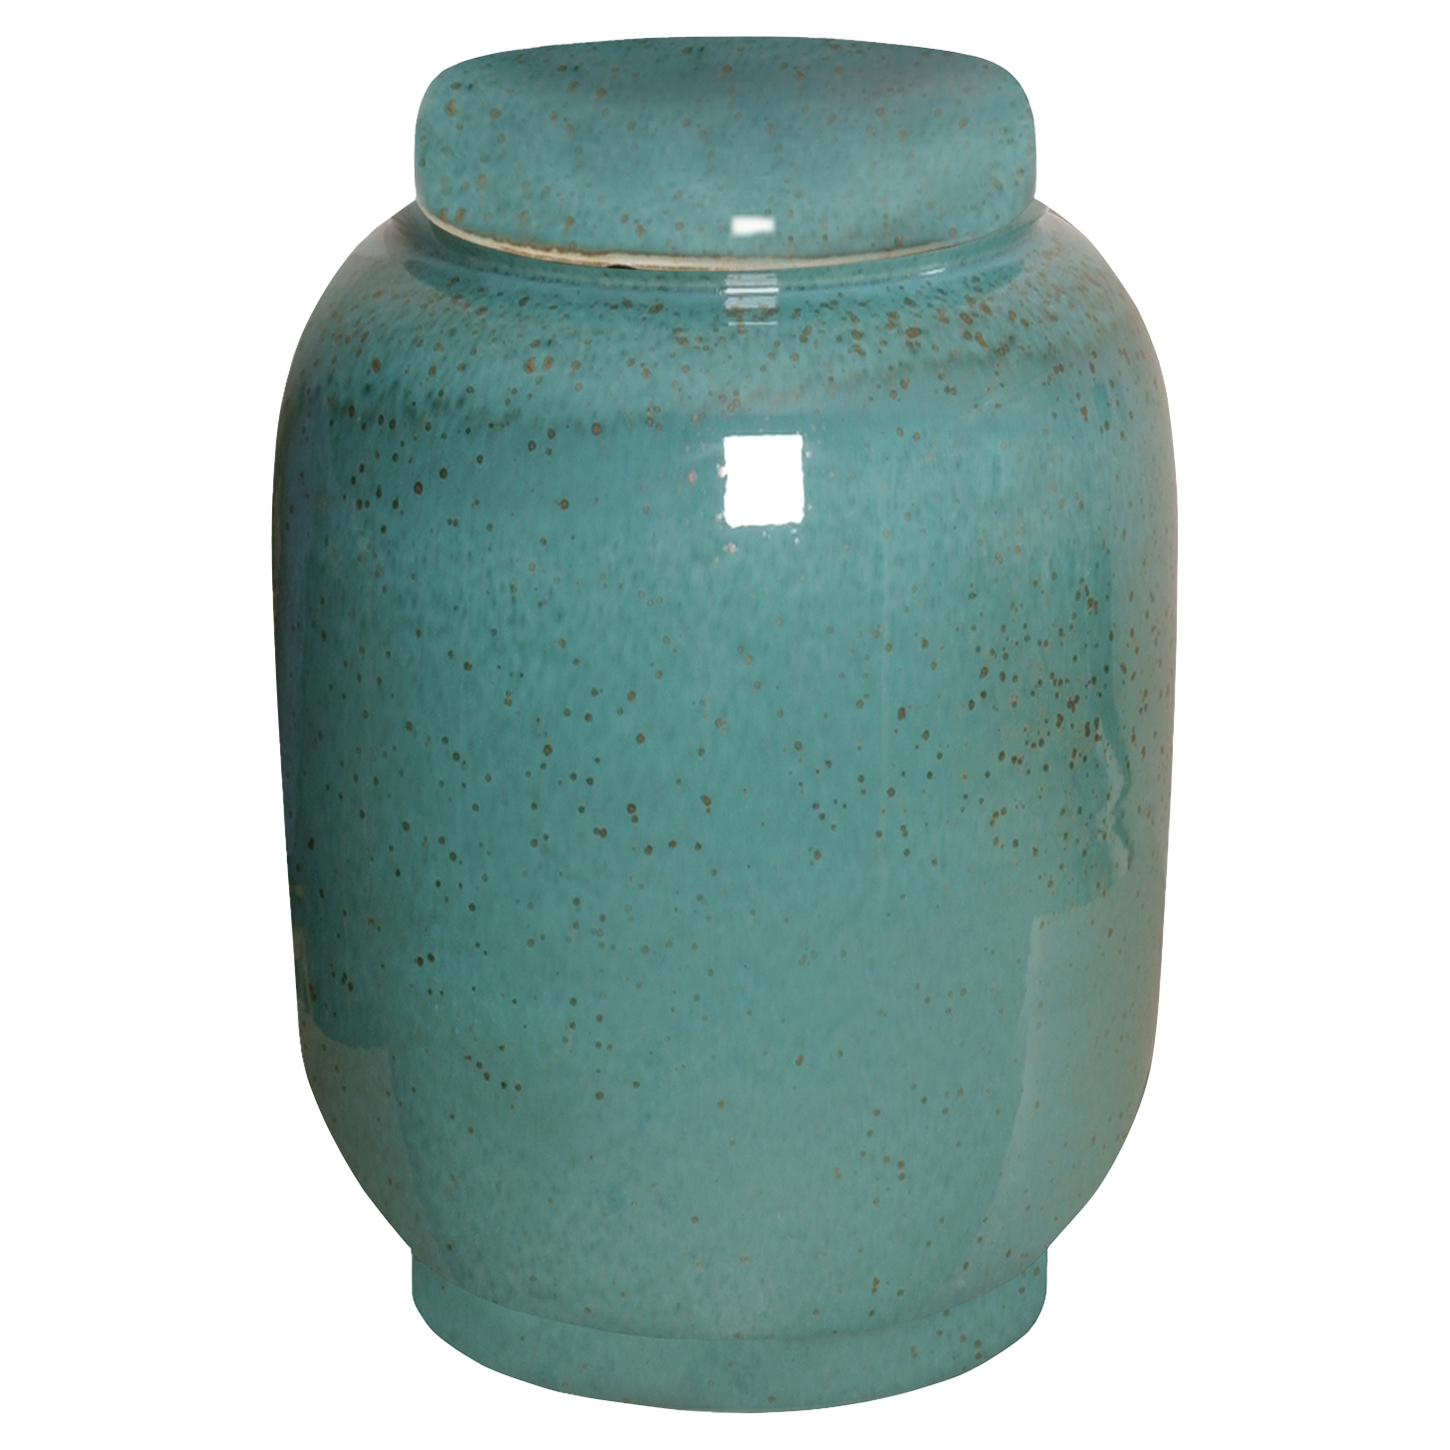 Jaego Bazaar Glazed Aqua Speckled Ceramic Ginger Jar - 16H